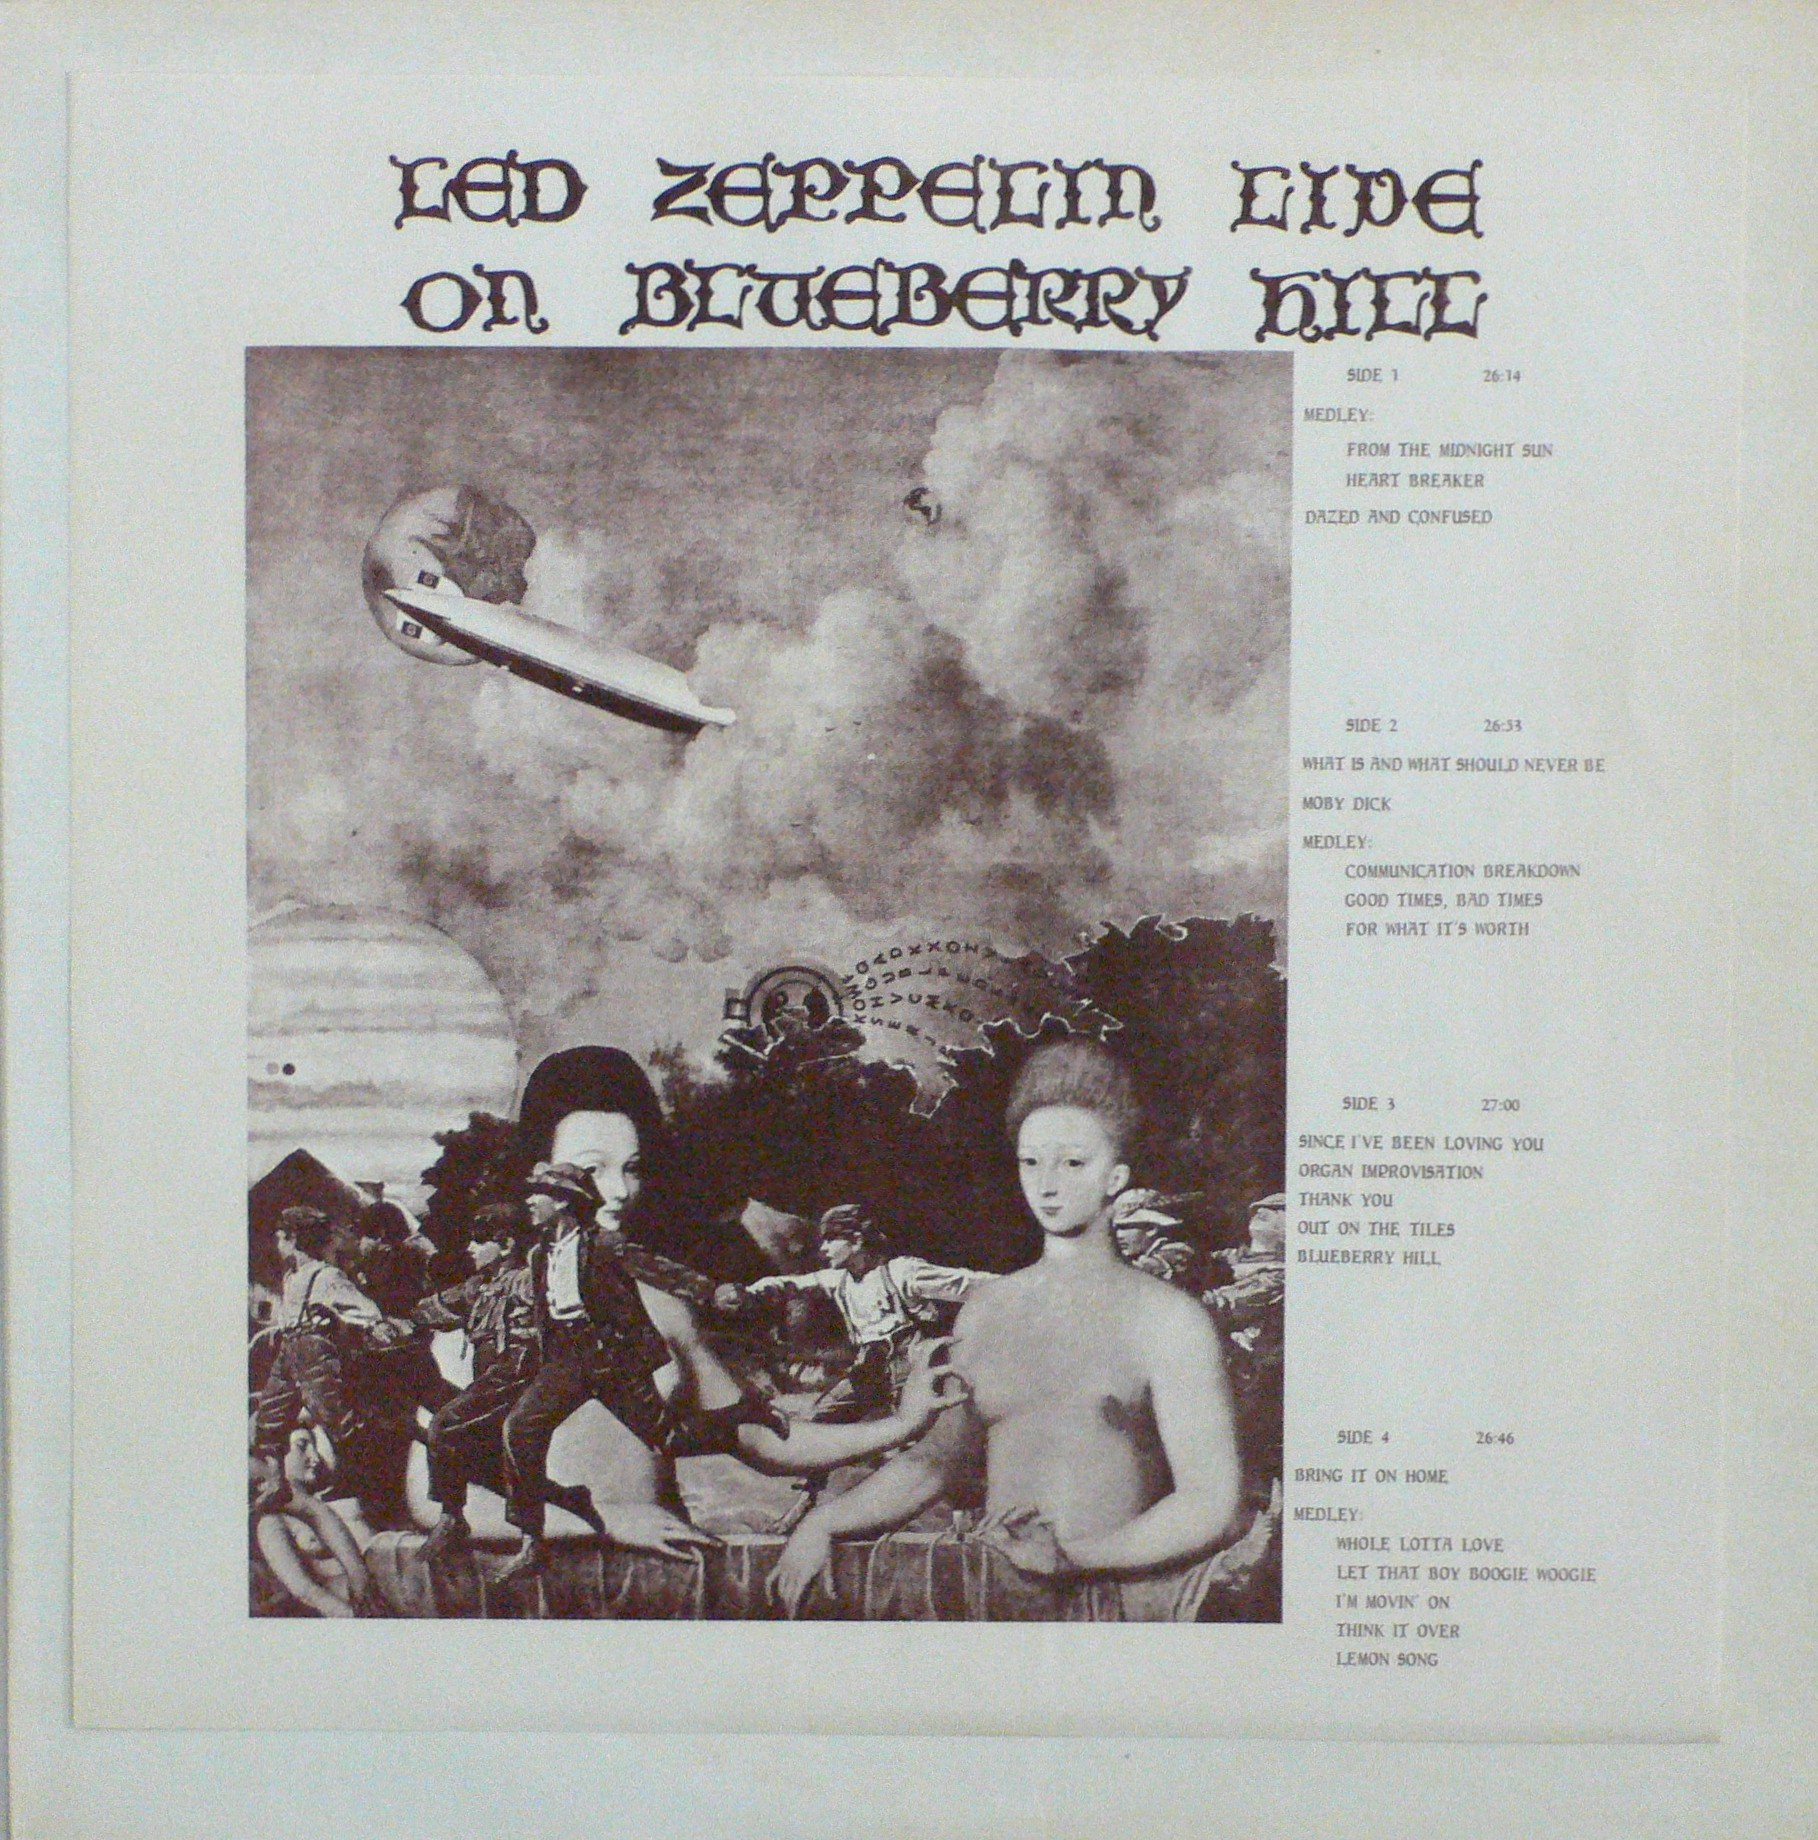 1970-09-04-live_on_blueberry_hill-vinyle